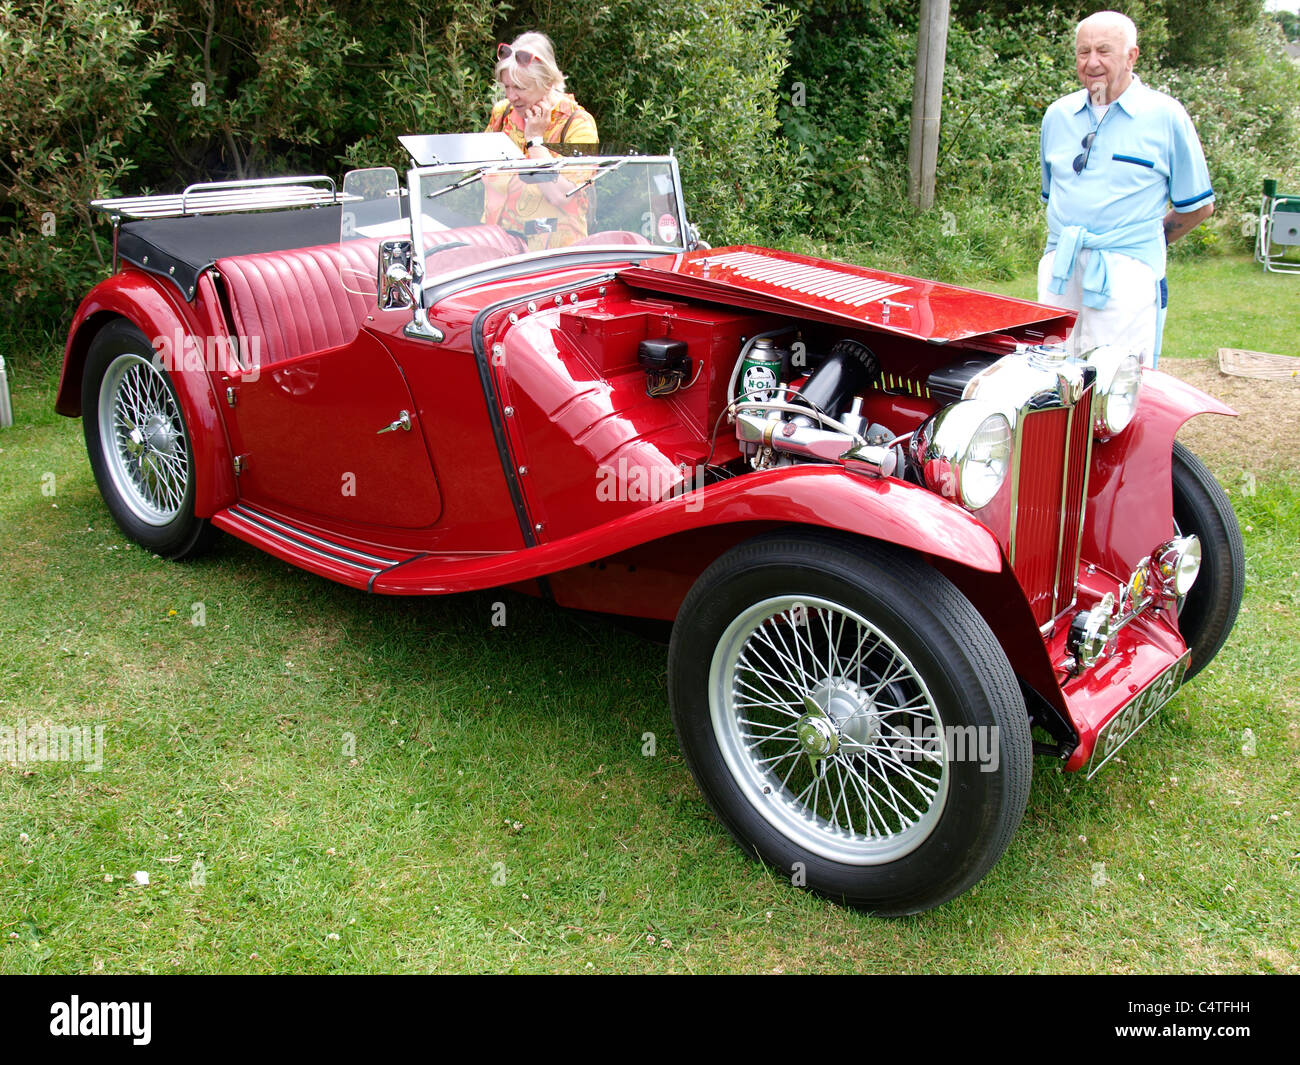 Classic Mg Bude Car Show Stock Photos Classic Mg Bude Car Show - Mg car show